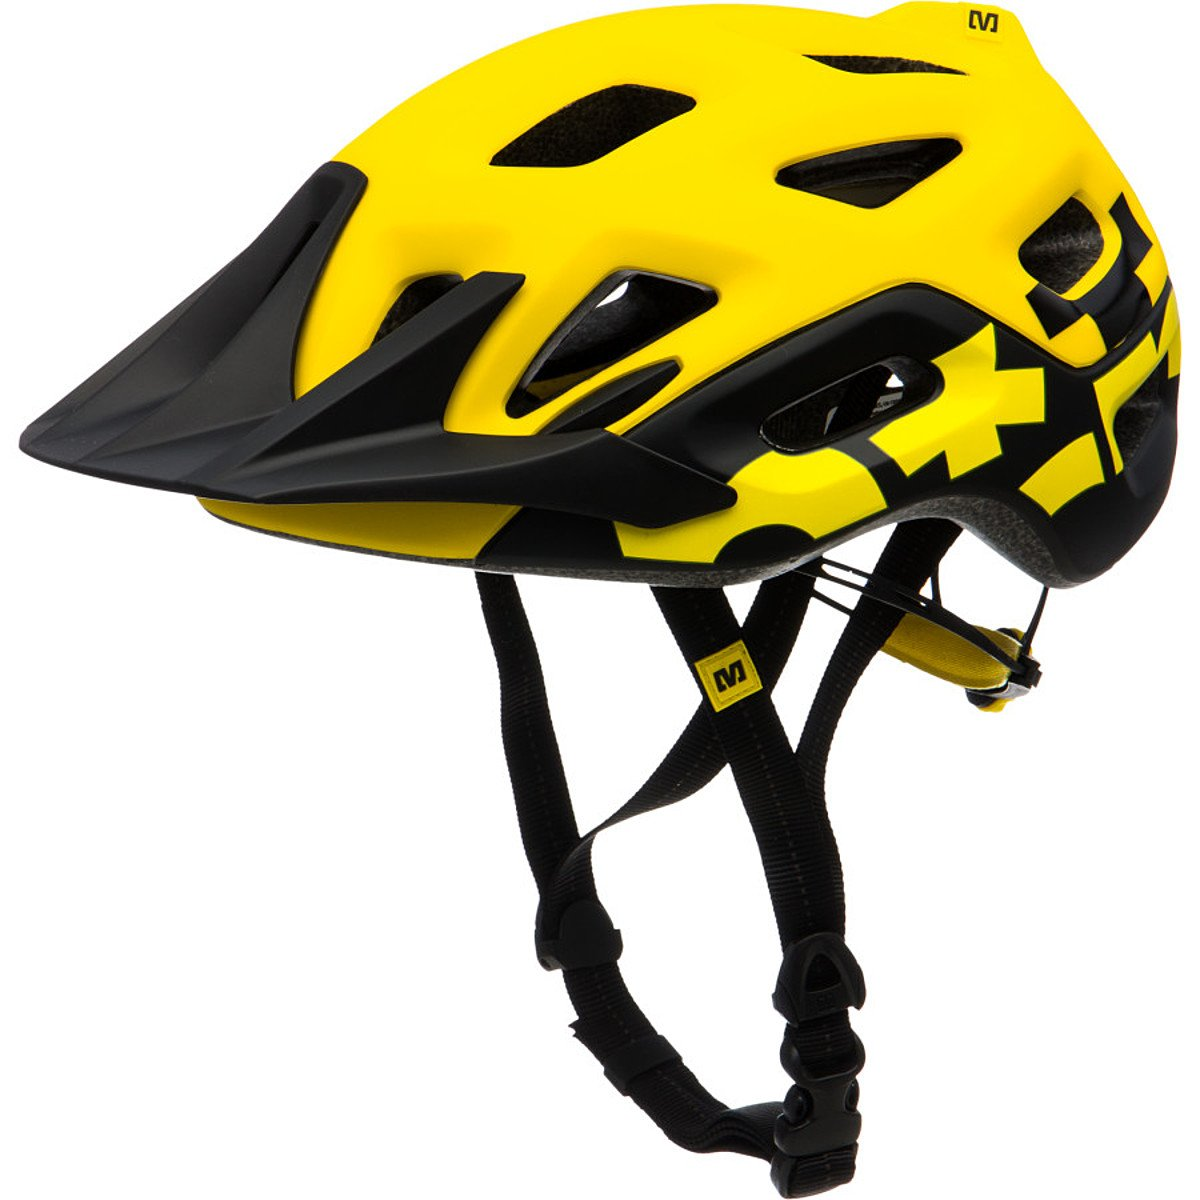 Mavic Yellow Black Yellow Black Head Circumference 54-59 cm Mountain Bike Helmet